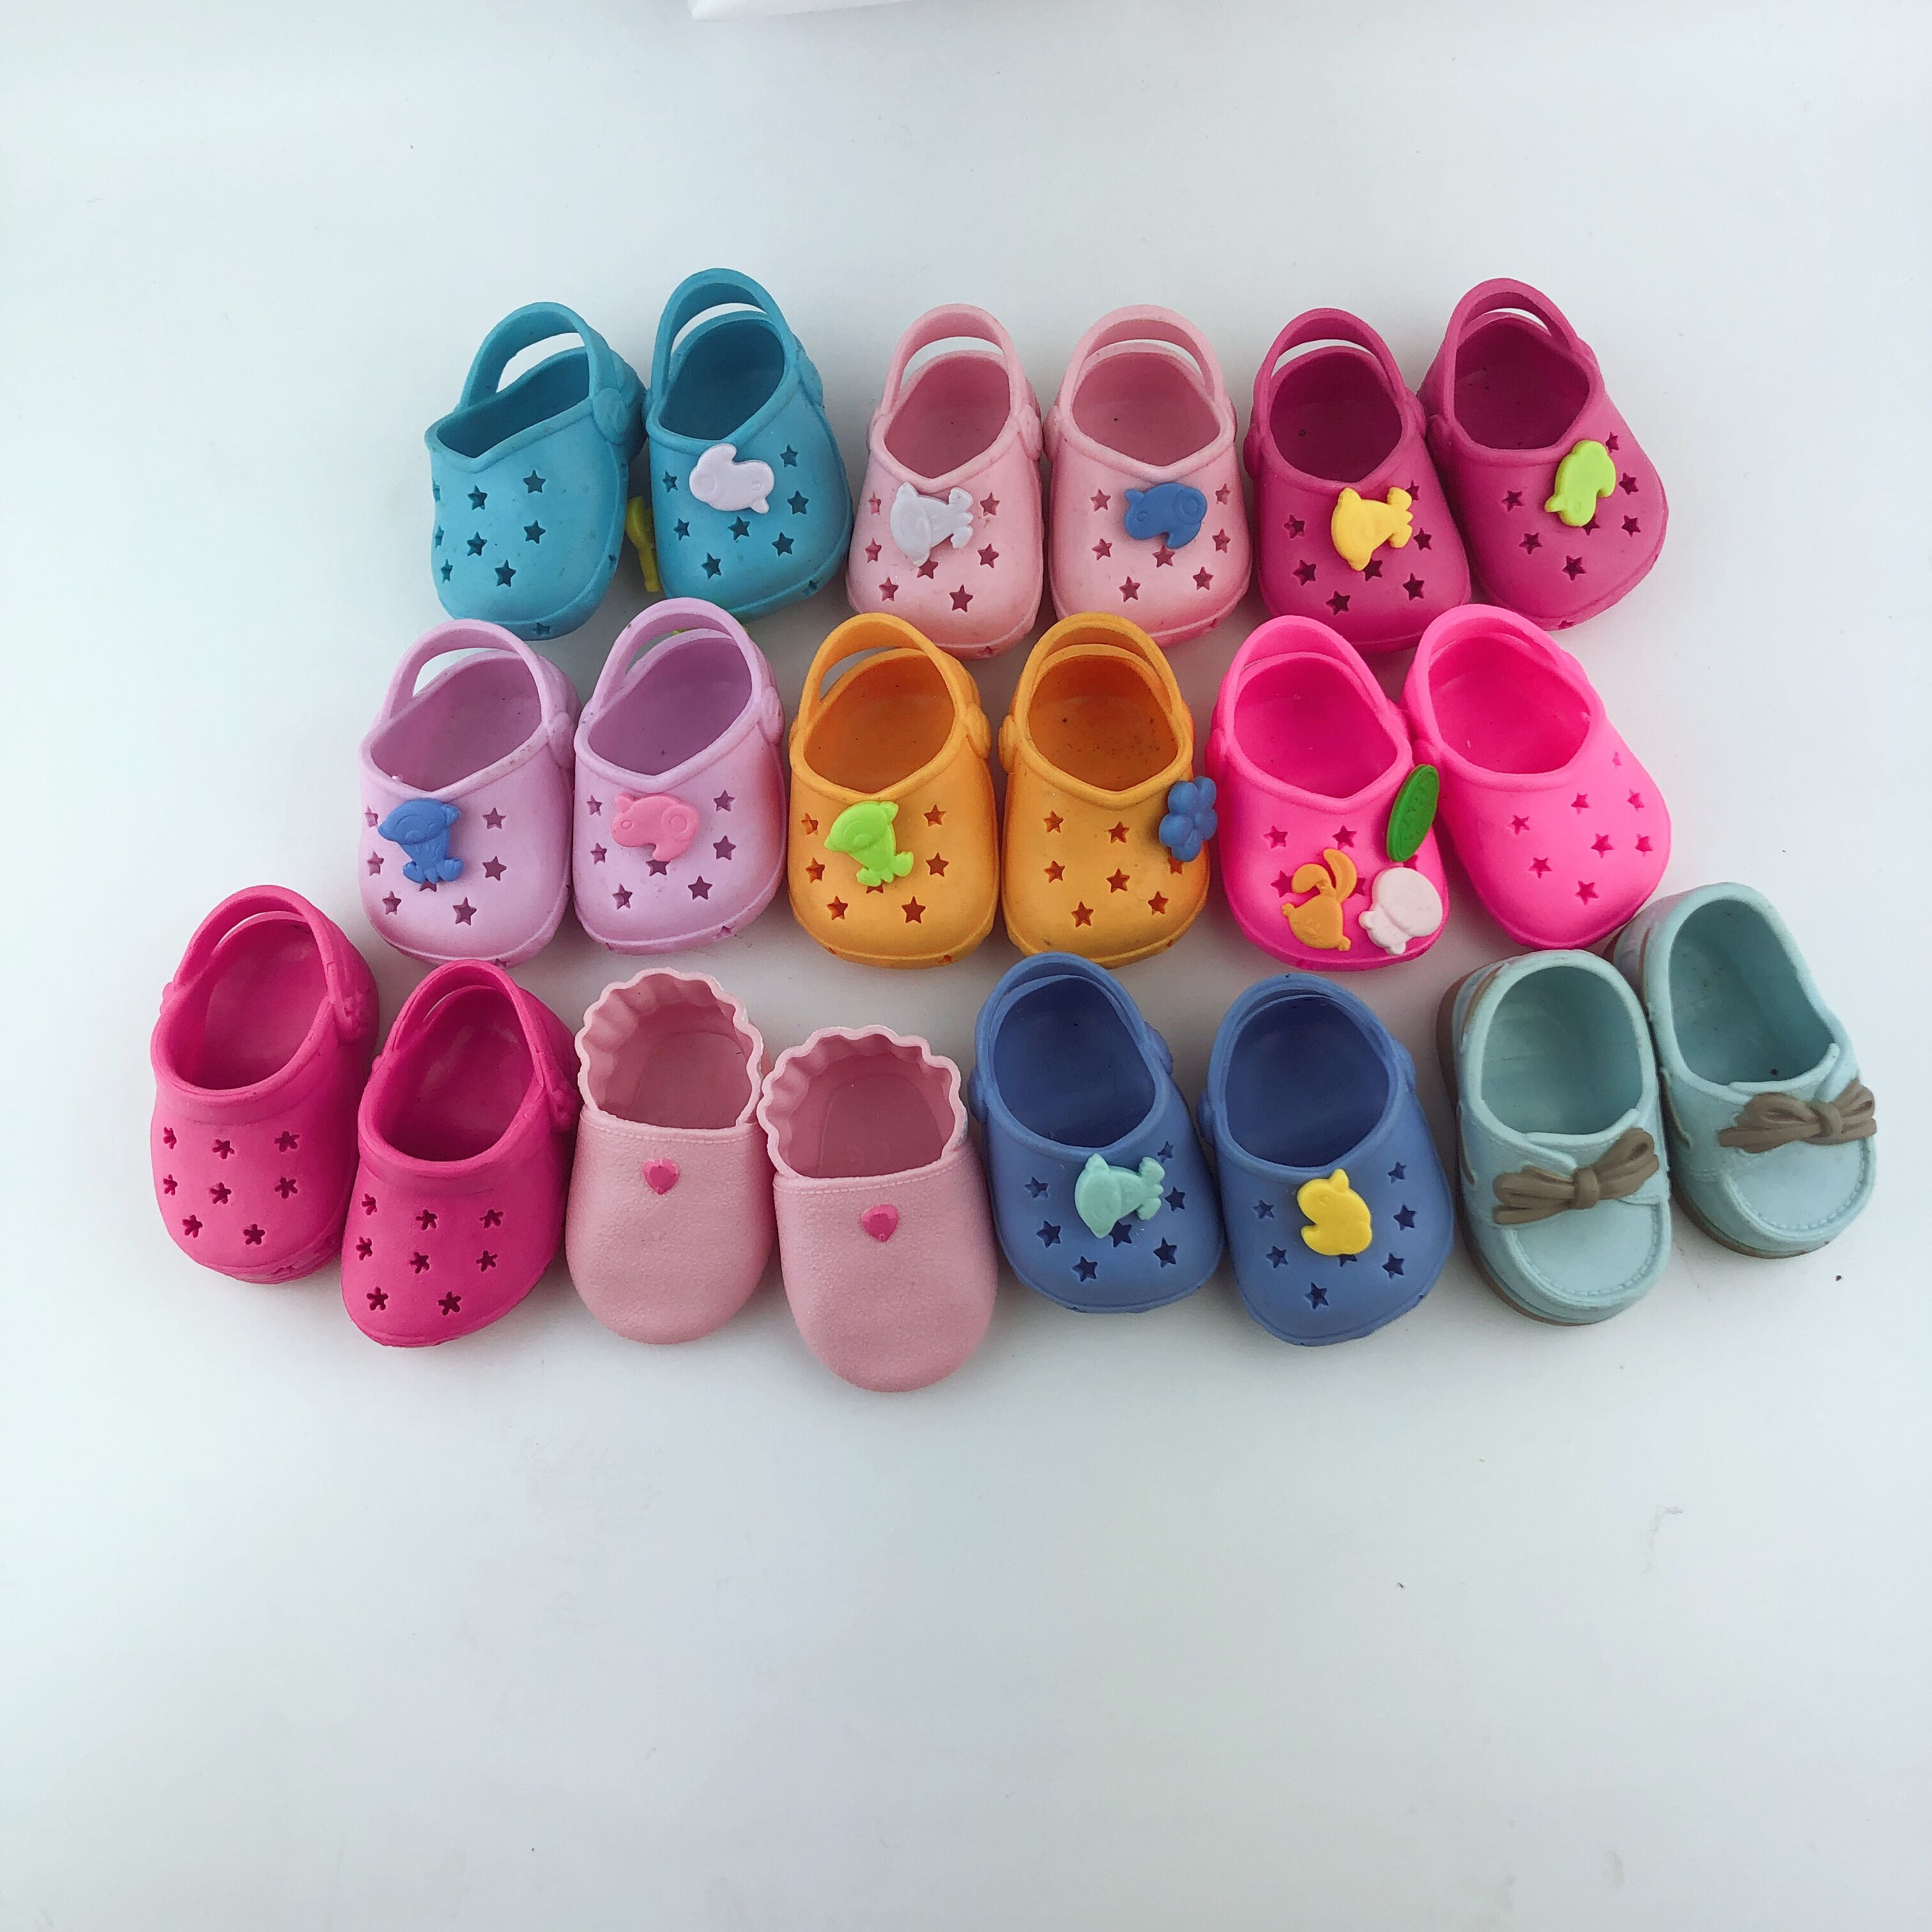 43cm New Born Doll Shoes And 17inch Doll Accessories Hot Meired Doll Shoes With Cute Charms For Baby Christmas Gift